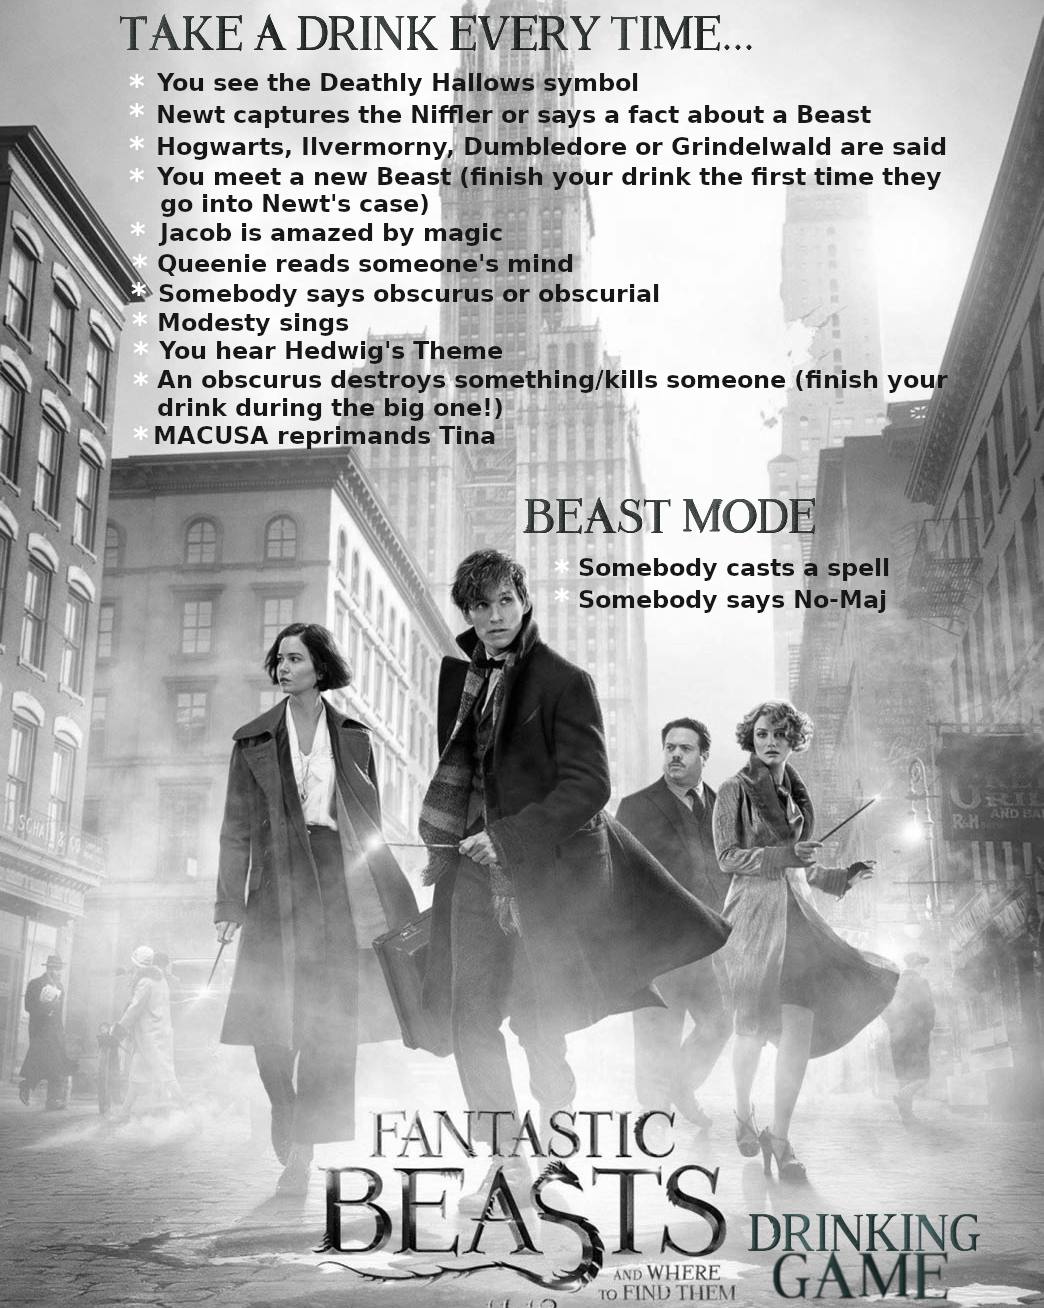 fantastic beasts drinking game